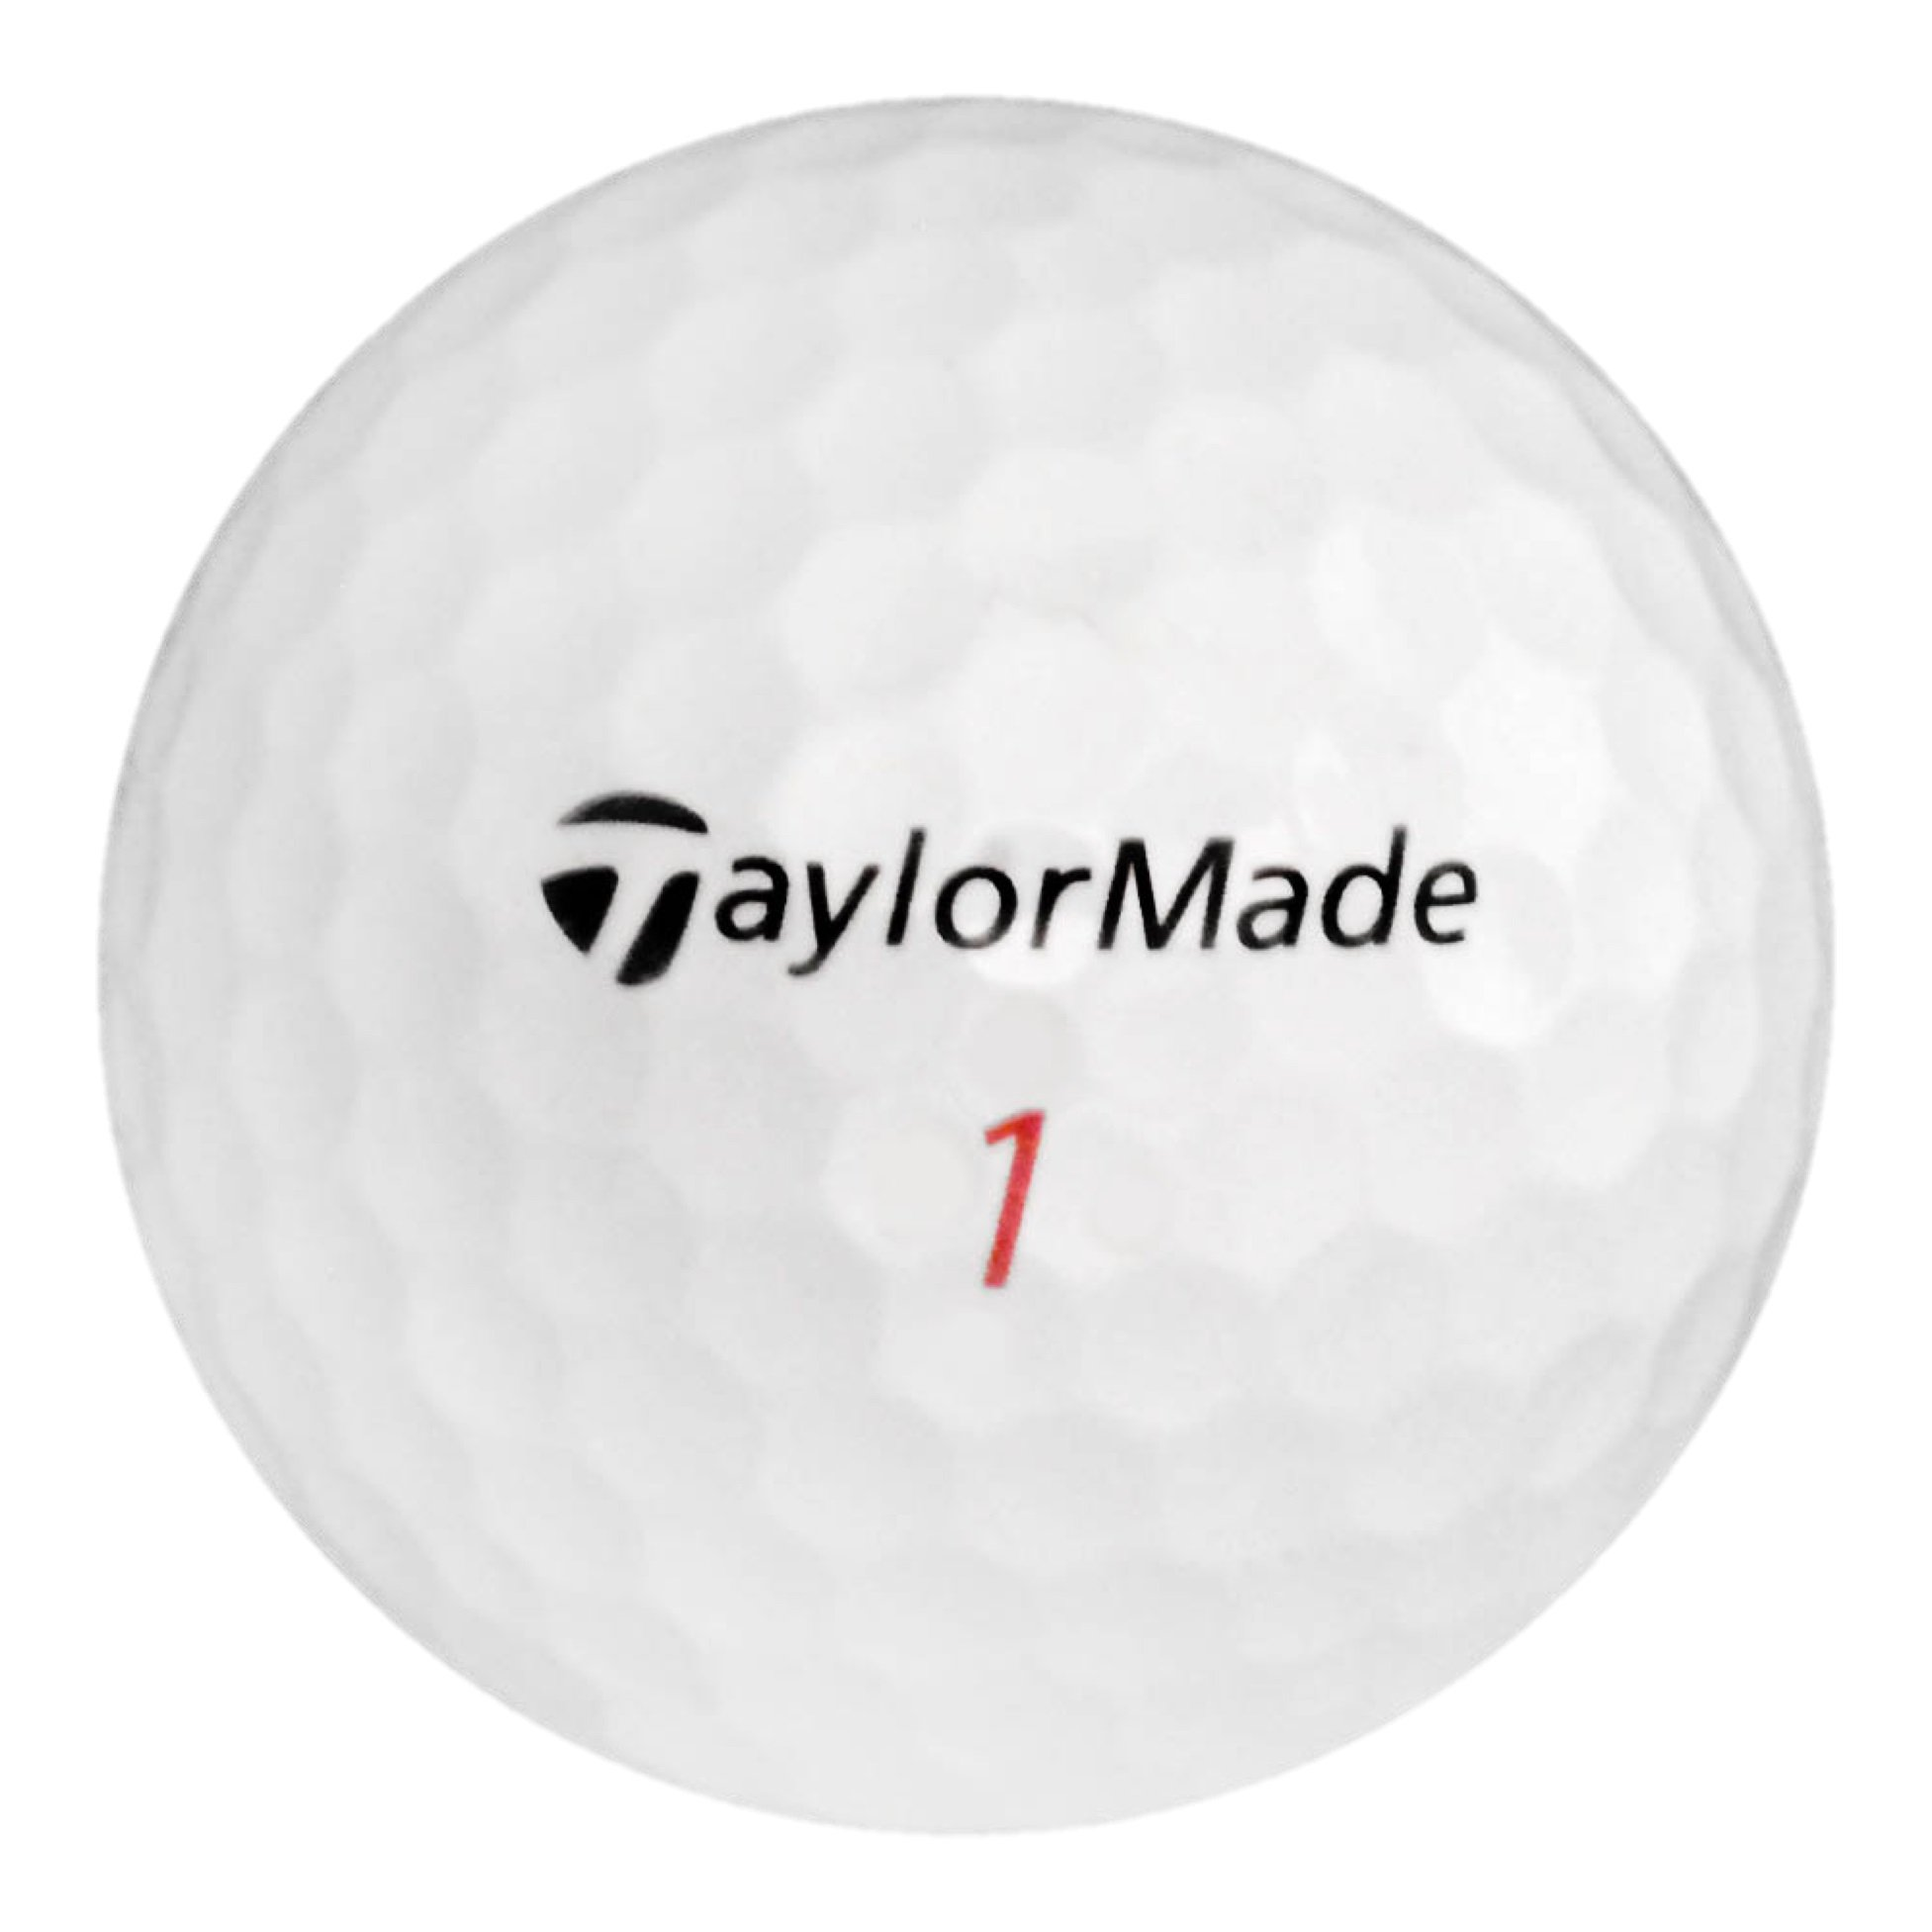 108 TaylorMade Tour Preferred X - Value (AAA) Grade - Recycled (Used) Golf Balls by TaylorMade (Image #2)